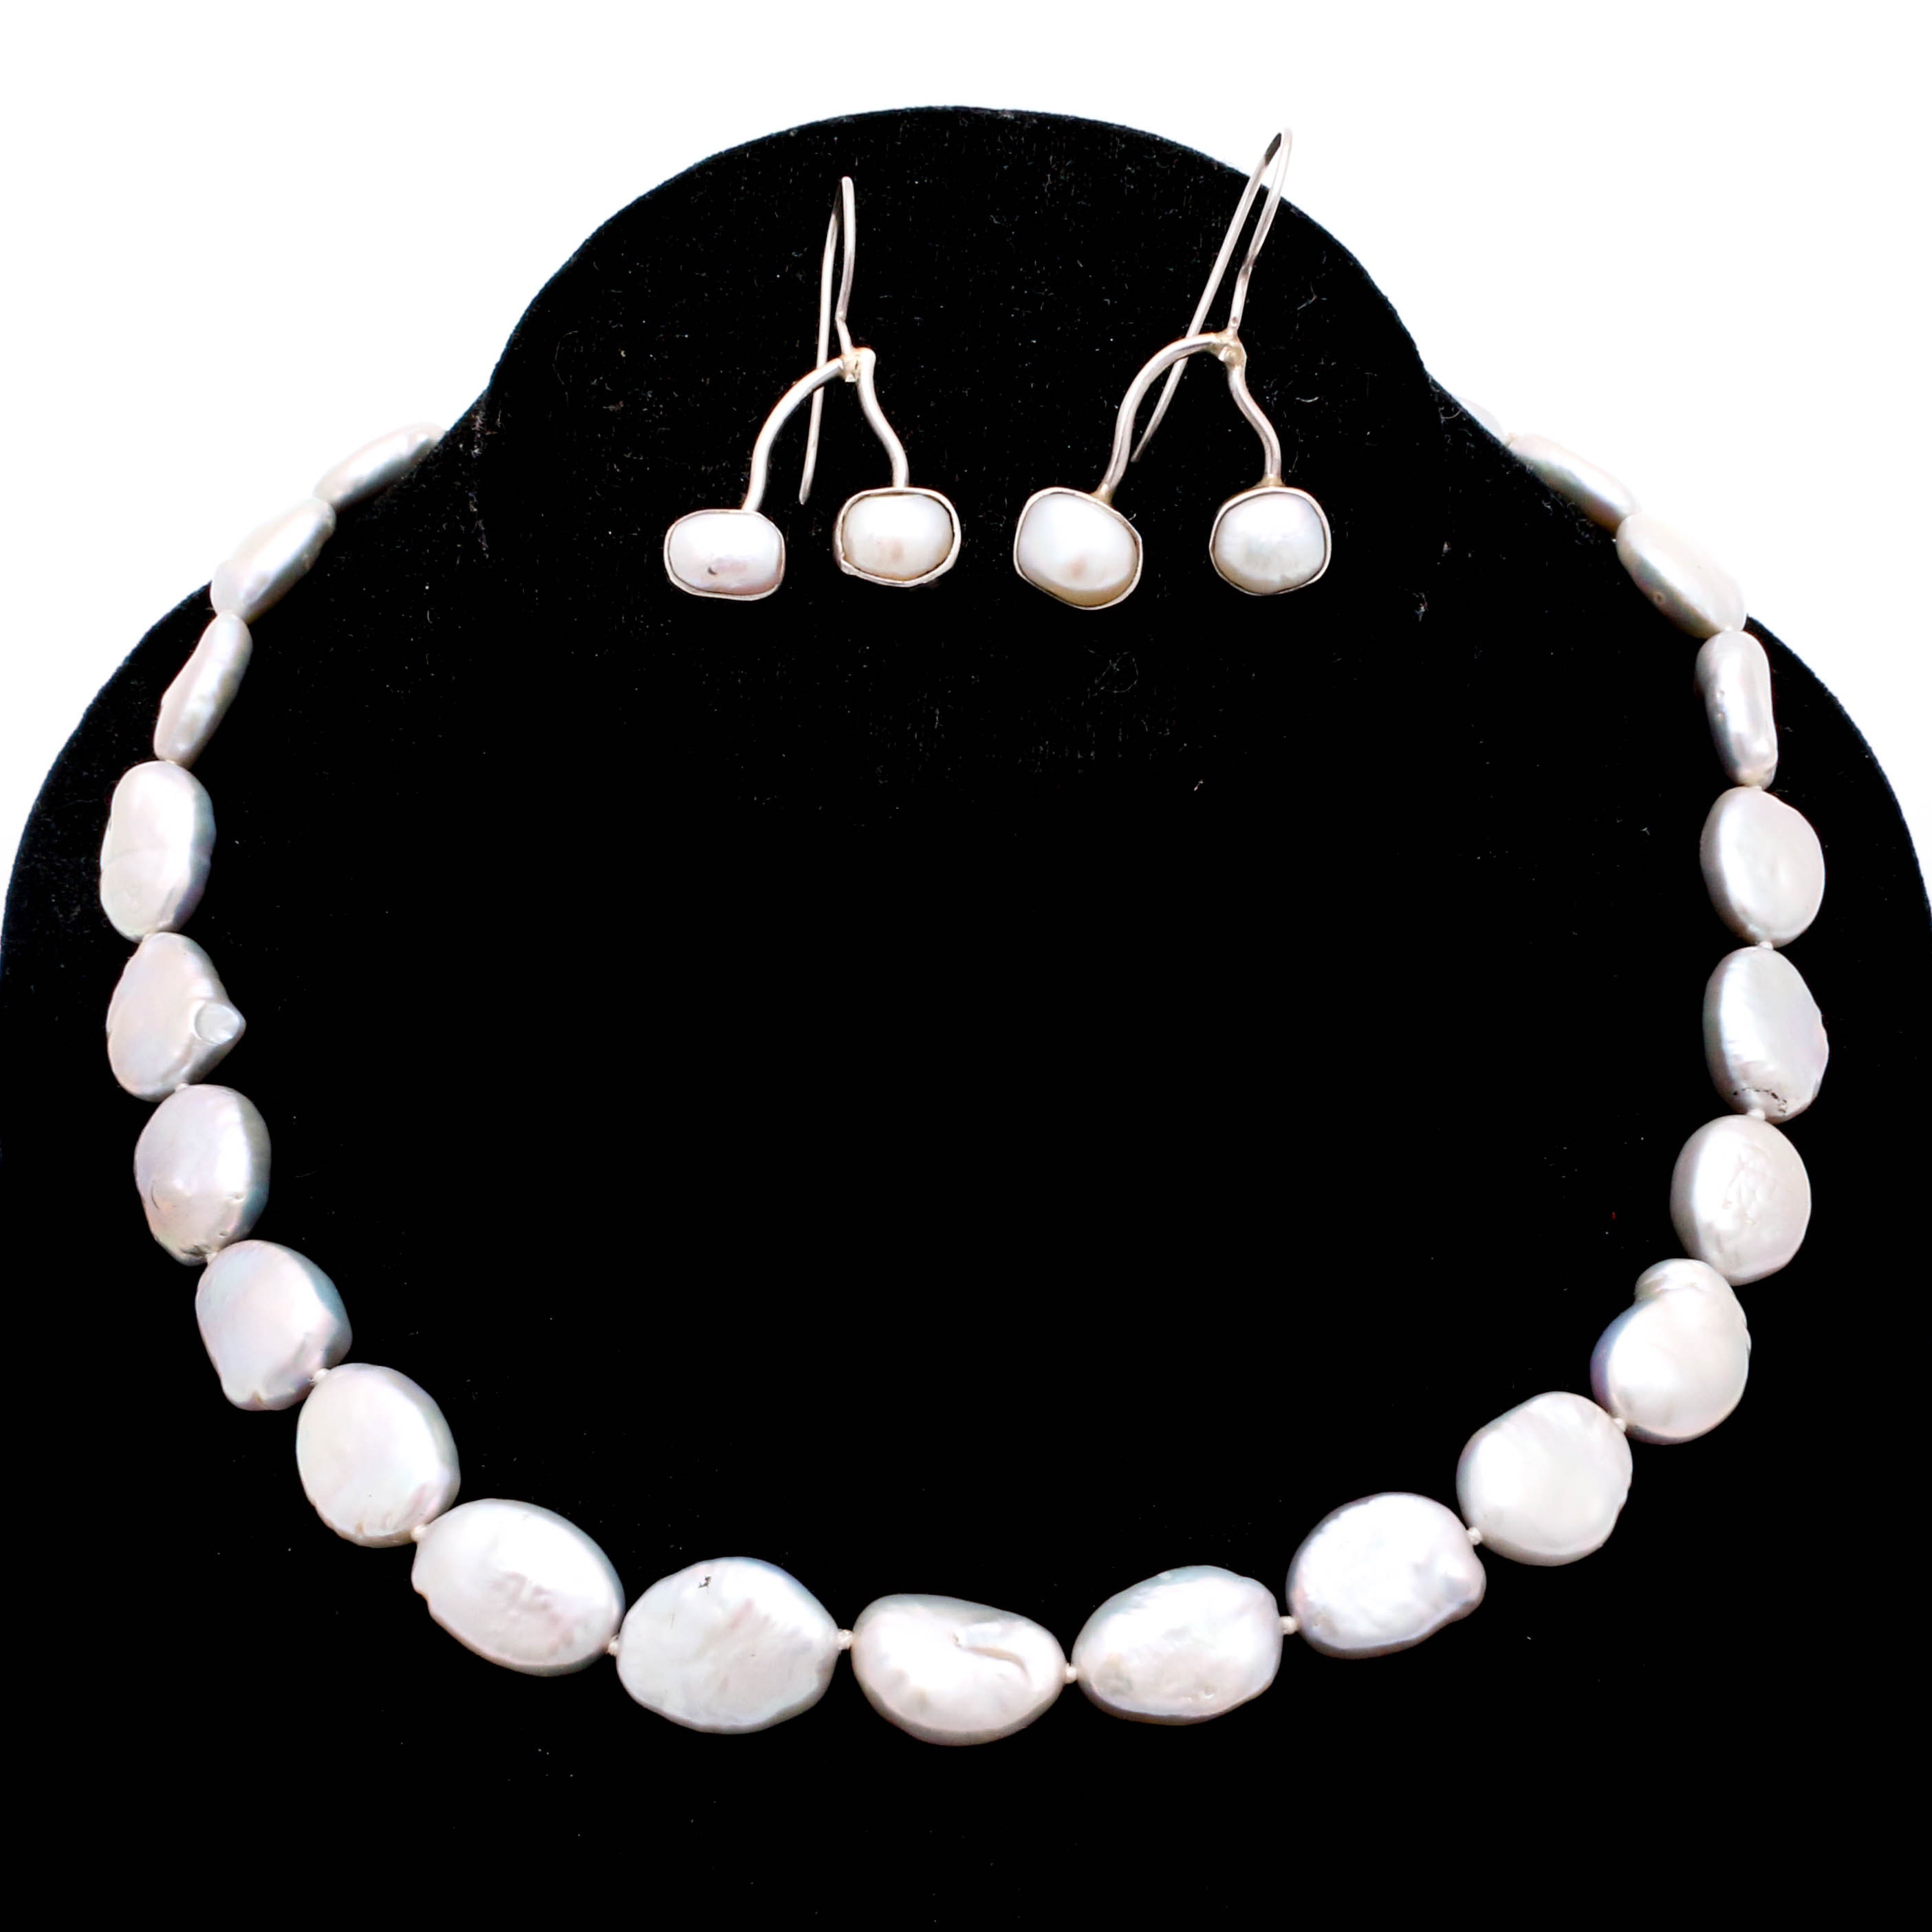 Suj Designs Sterling Silver Freshwater Pearl Necklace and Earrings